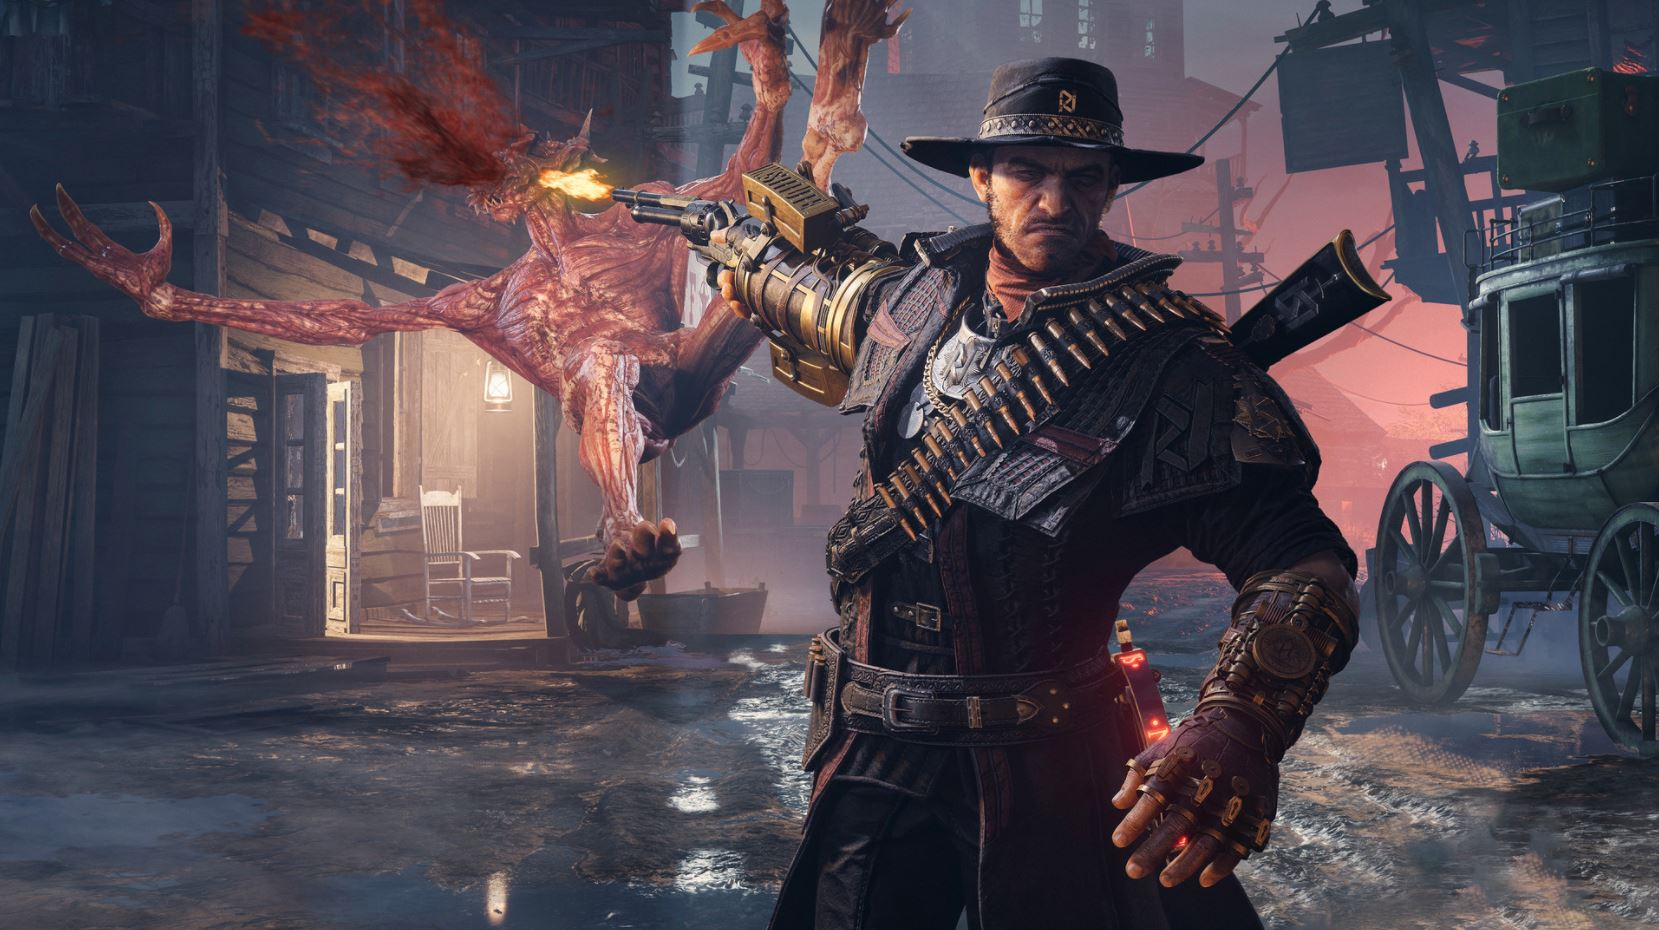 evil-west-and-shadow-warrior-3-developers-flying-wild-hog-have-two-more-games-in-development-one-with-runescape-publisher